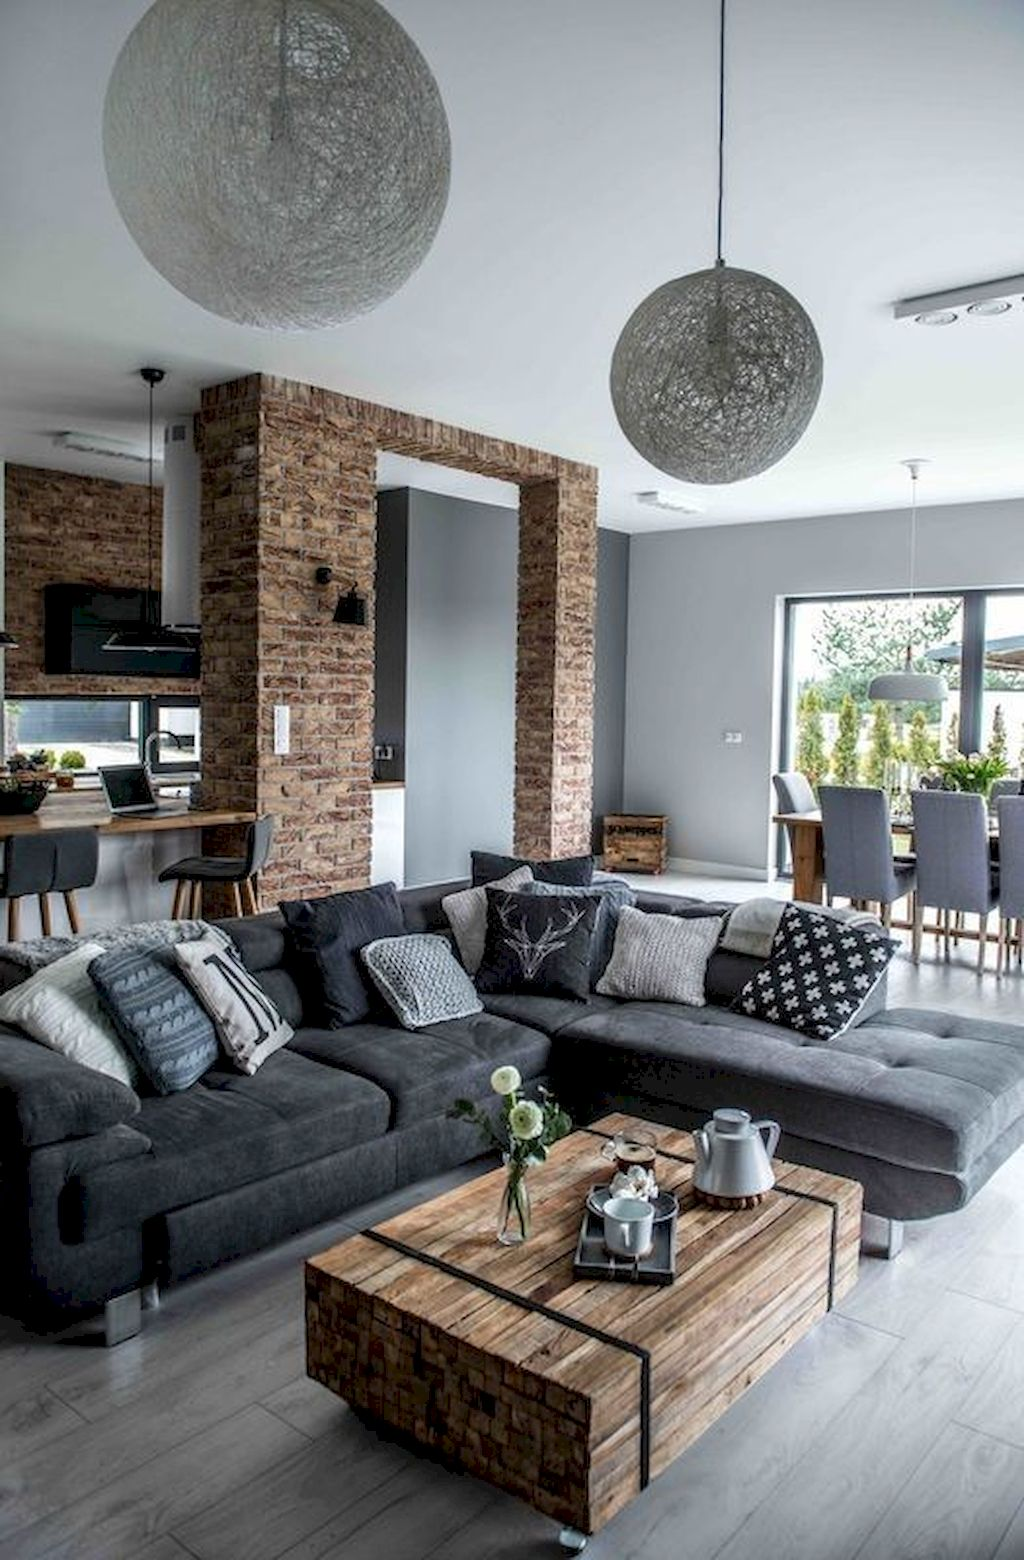 Elegant Living Room Design With Multi Layers Coloring Concept Part 5